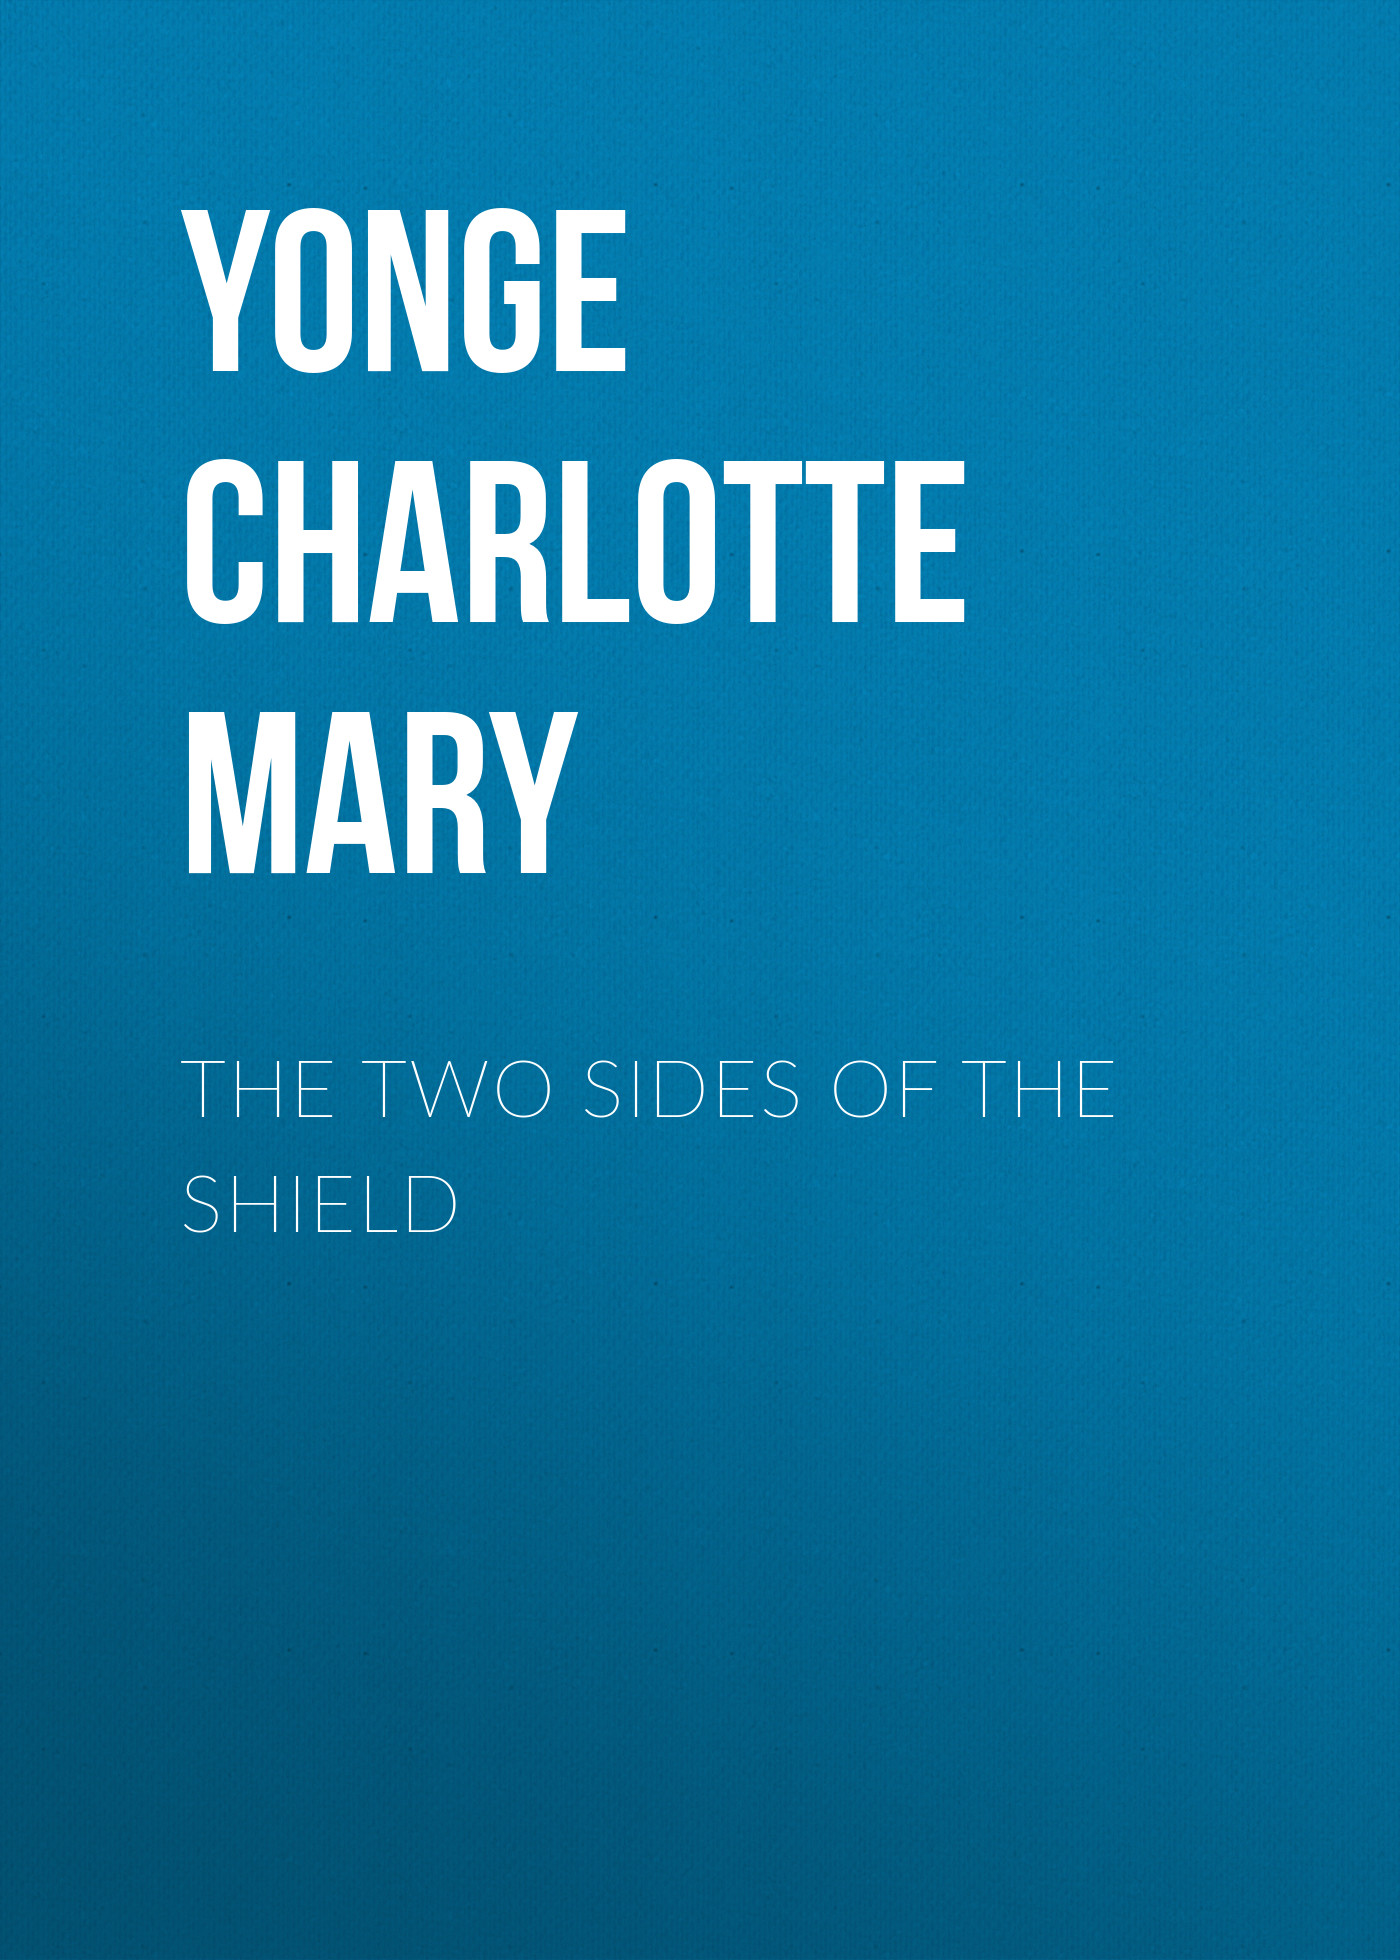 Yonge Charlotte Mary The Two Sides of the Shield 2016 the new recommendation of the two sides of the two sides of the pineapple service women s clothing split body and european